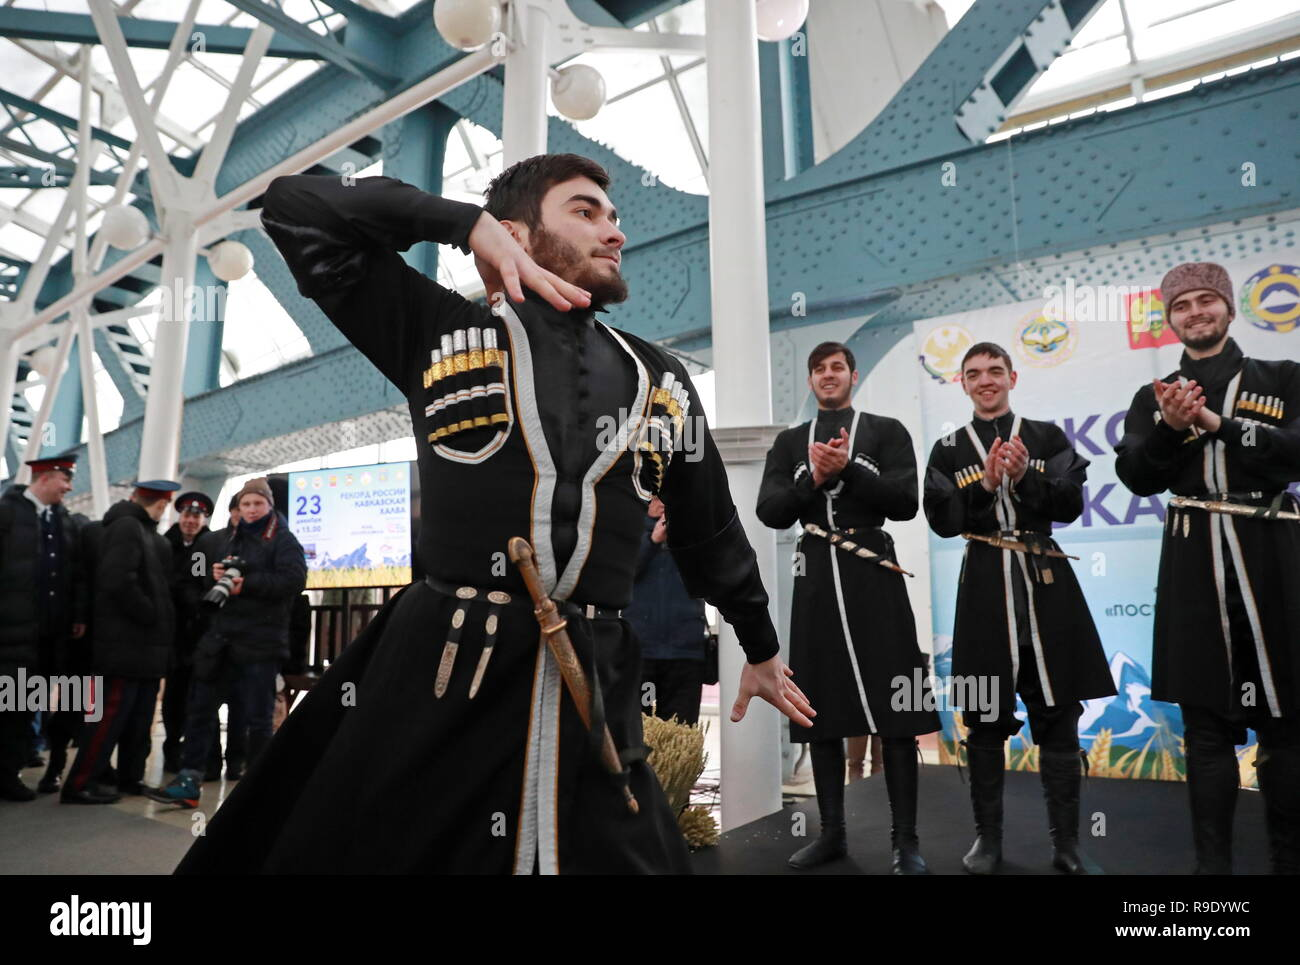 Moscow, Russia. 23rd Dec, 2018.  A man in a tradition dress dancing during a ceremony to measure halva prepared by cooks from the 7 North Caucasus regions on the Bogdan Khmelnitsky Bridge. The 65.5-metre long confection weighing 570 kg has entered the Russian Book of Records as the largest.  Credit: ITAR-TASS News Agency/Alamy Live News - Stock Image